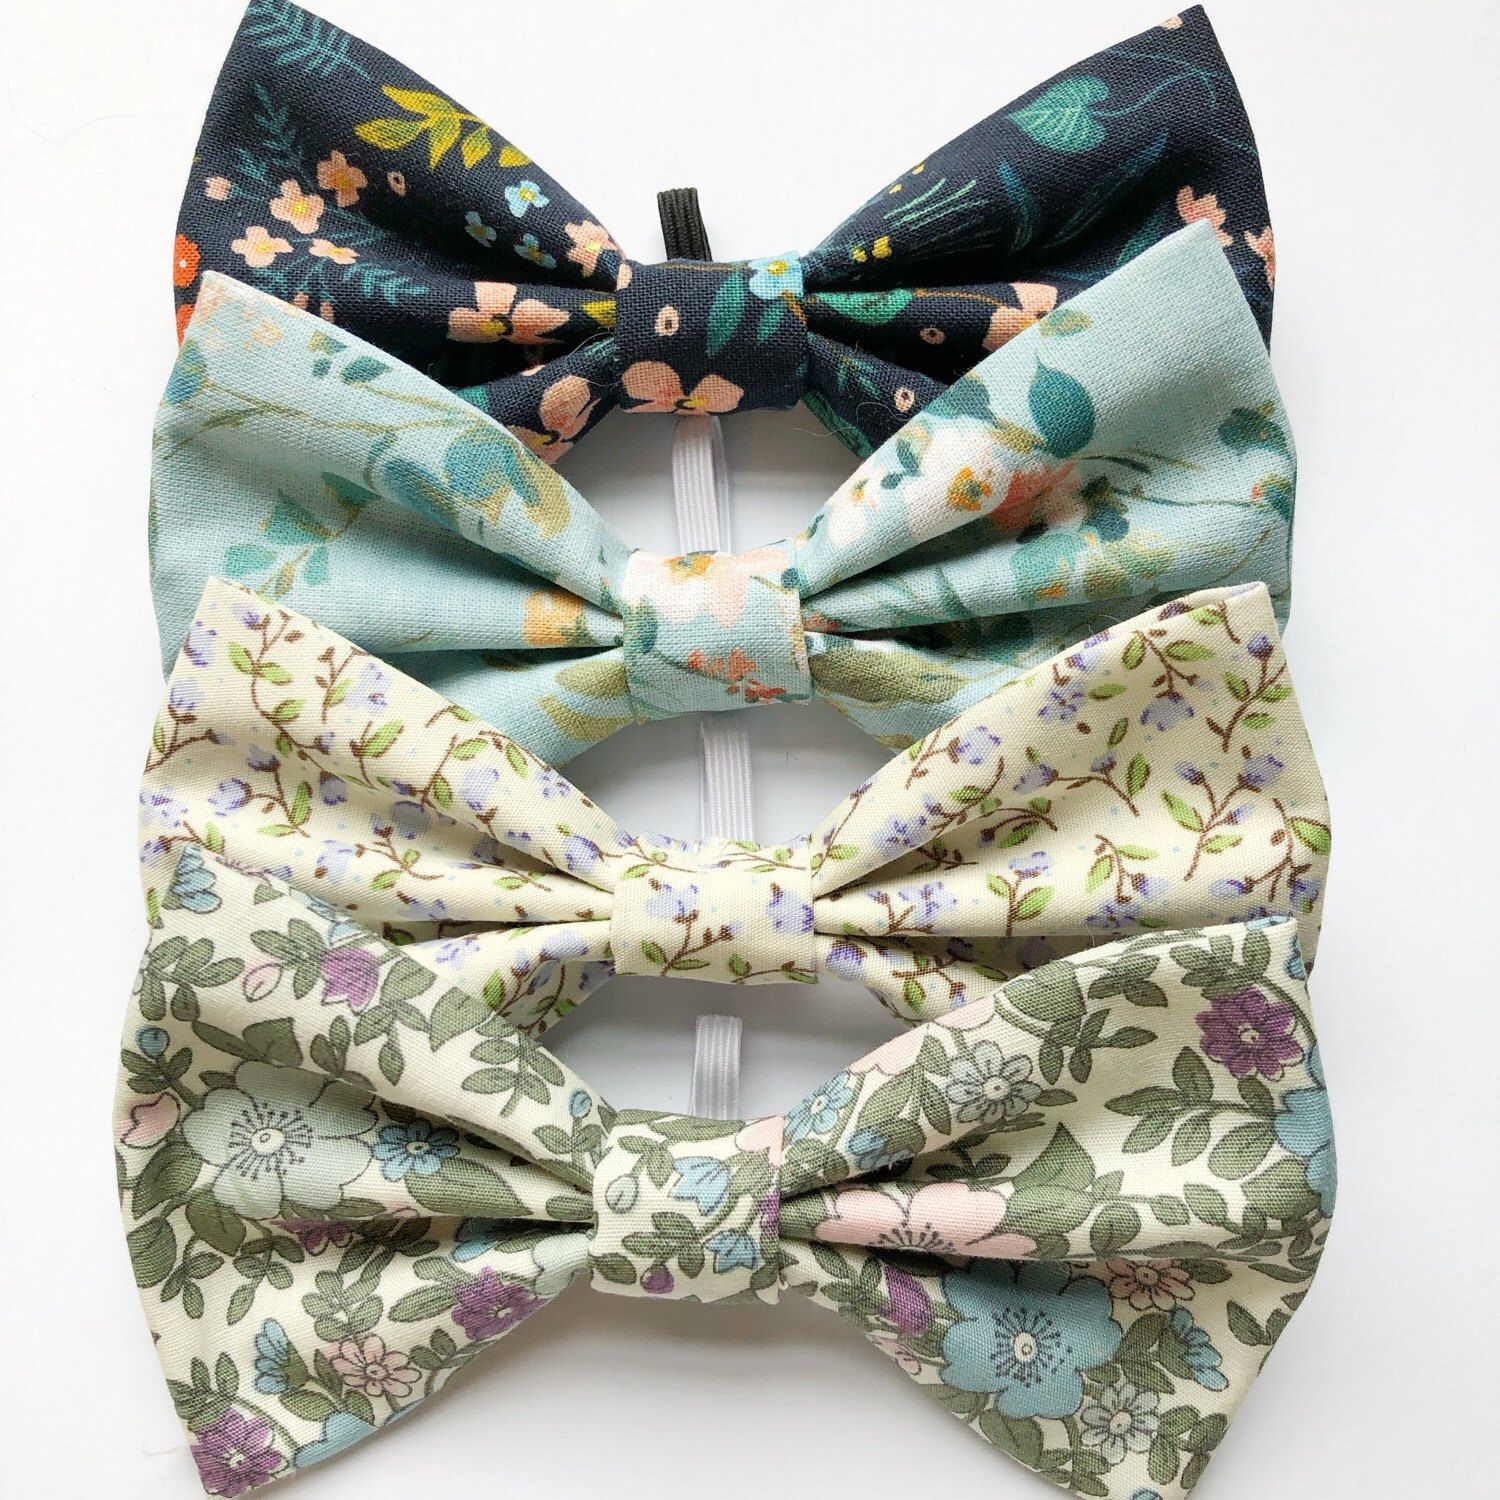 Sage Green And Purple Dog Bow Tie With A Gorgeous Floral Print Handmade Using Cotton Bow Ties For Dogs Puppy Bow Tie Dog Bowtie Bows Floral